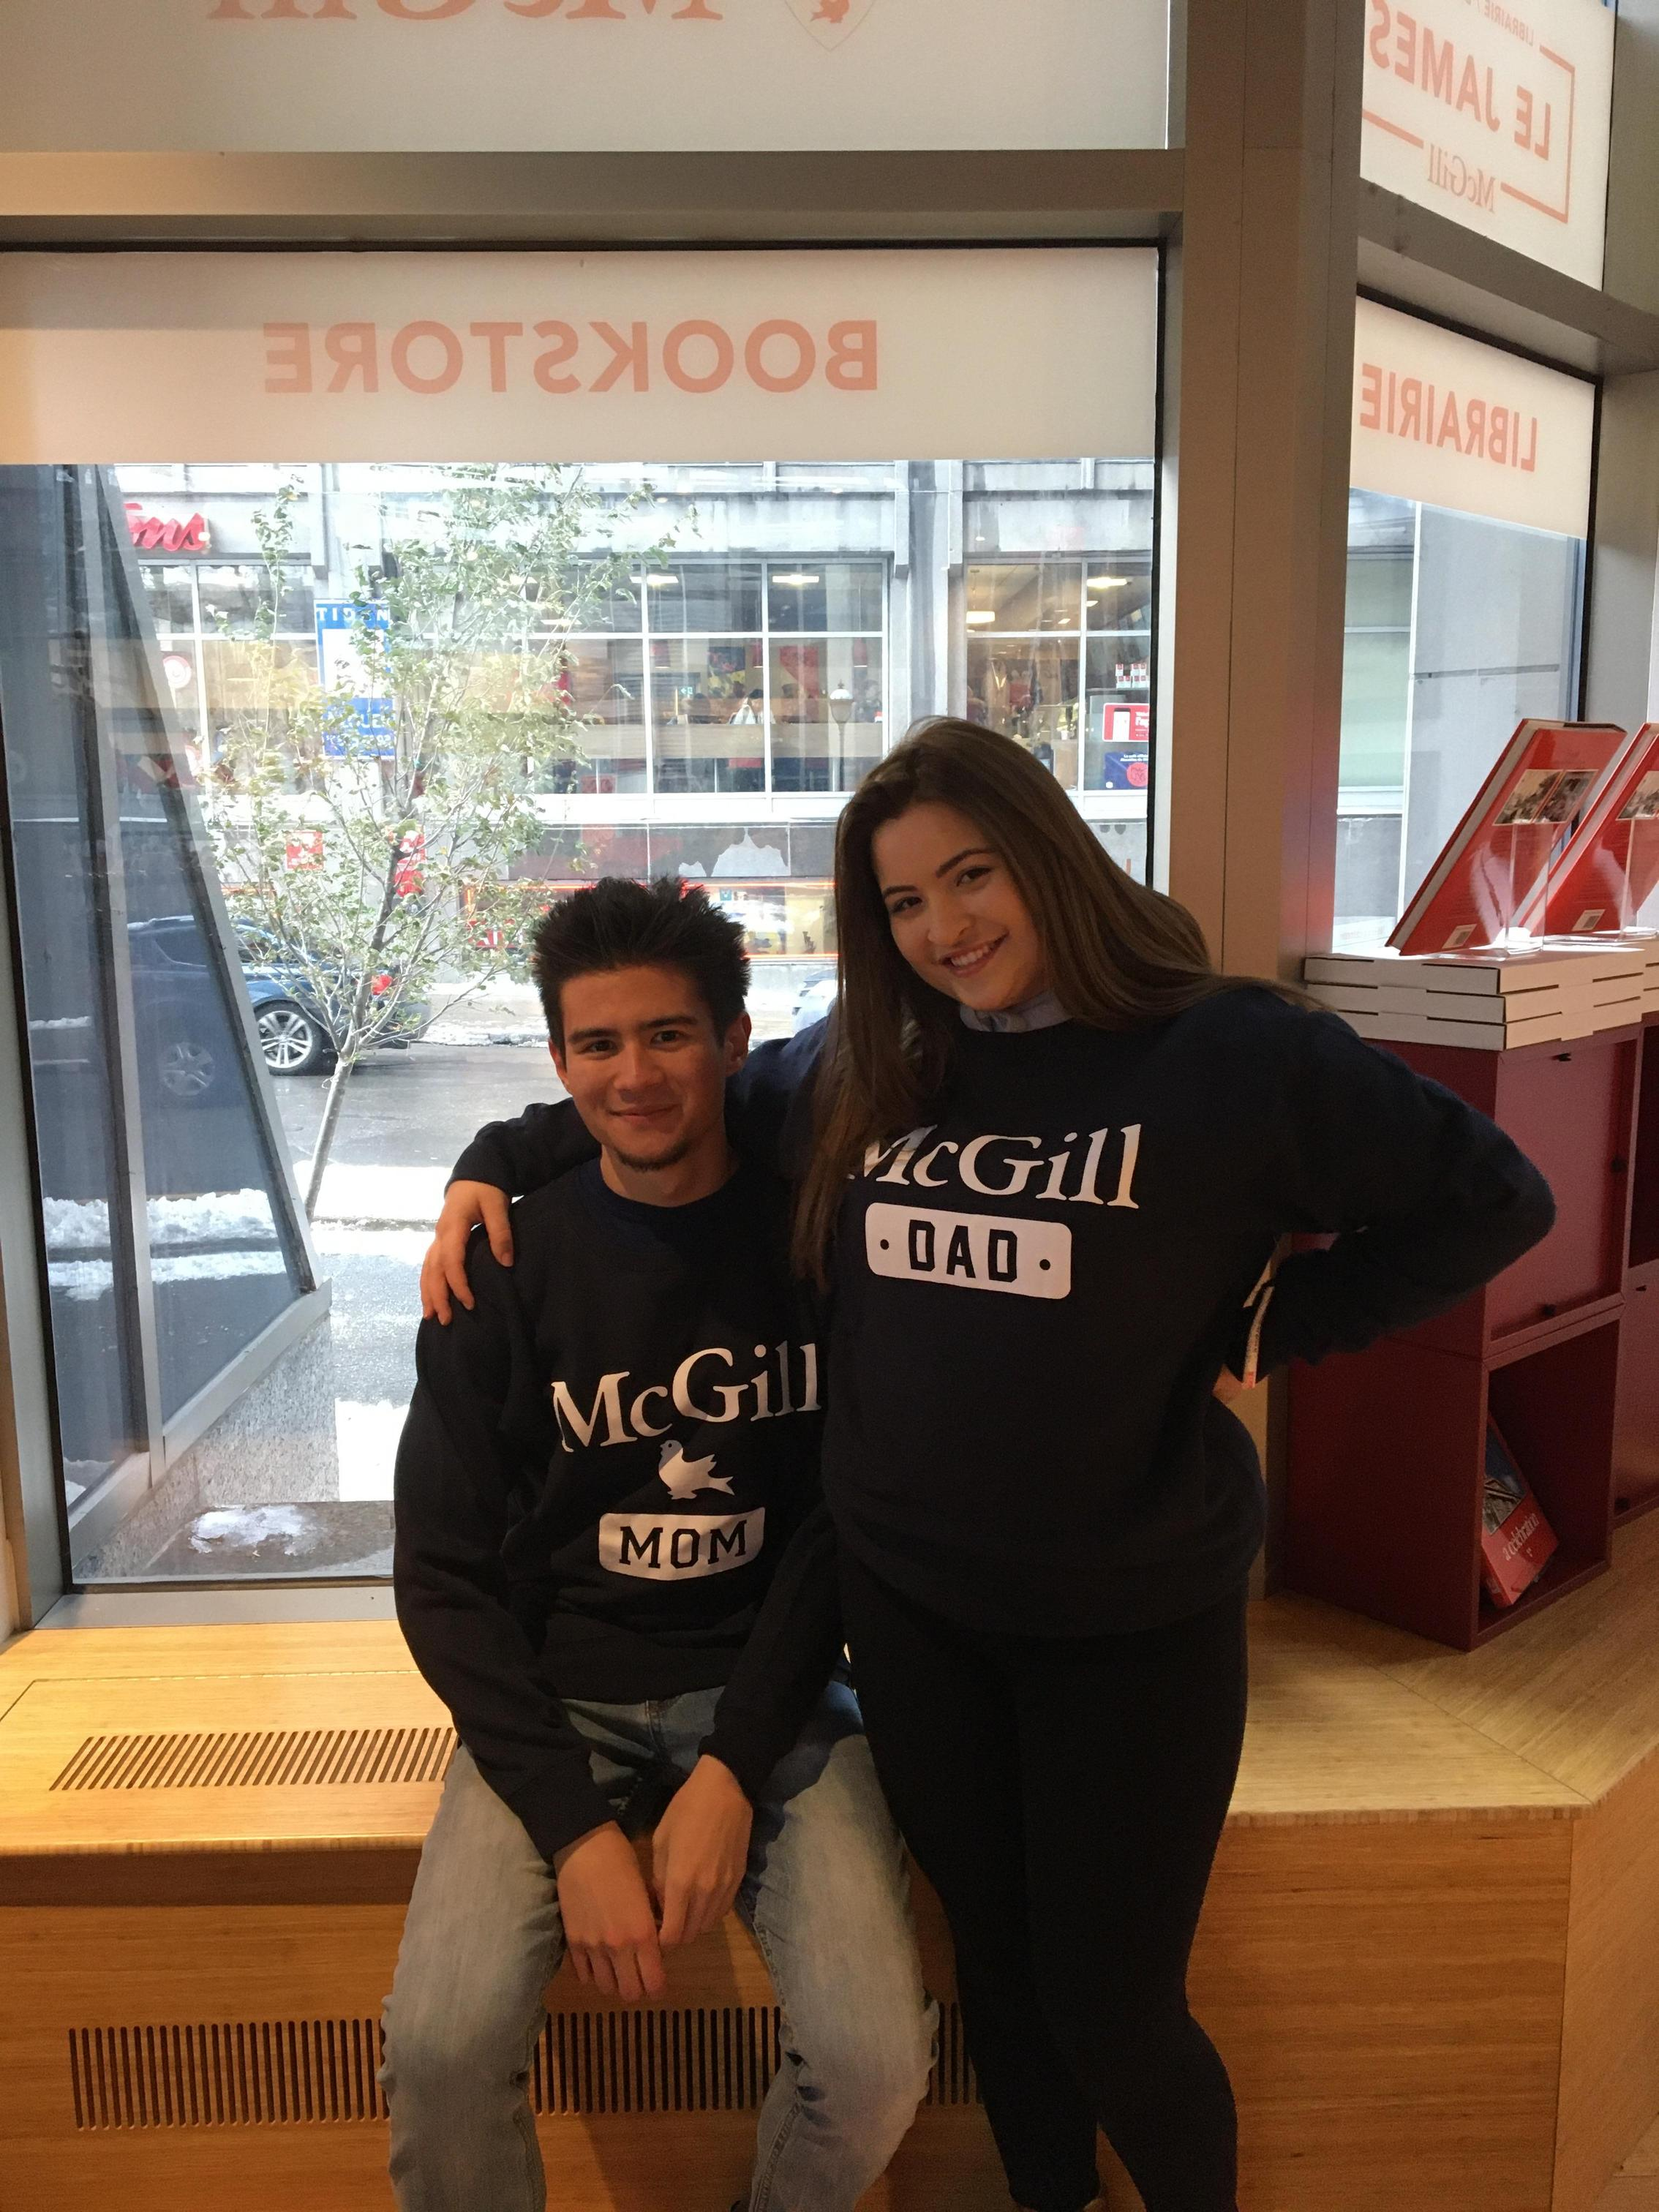 McGill Tour